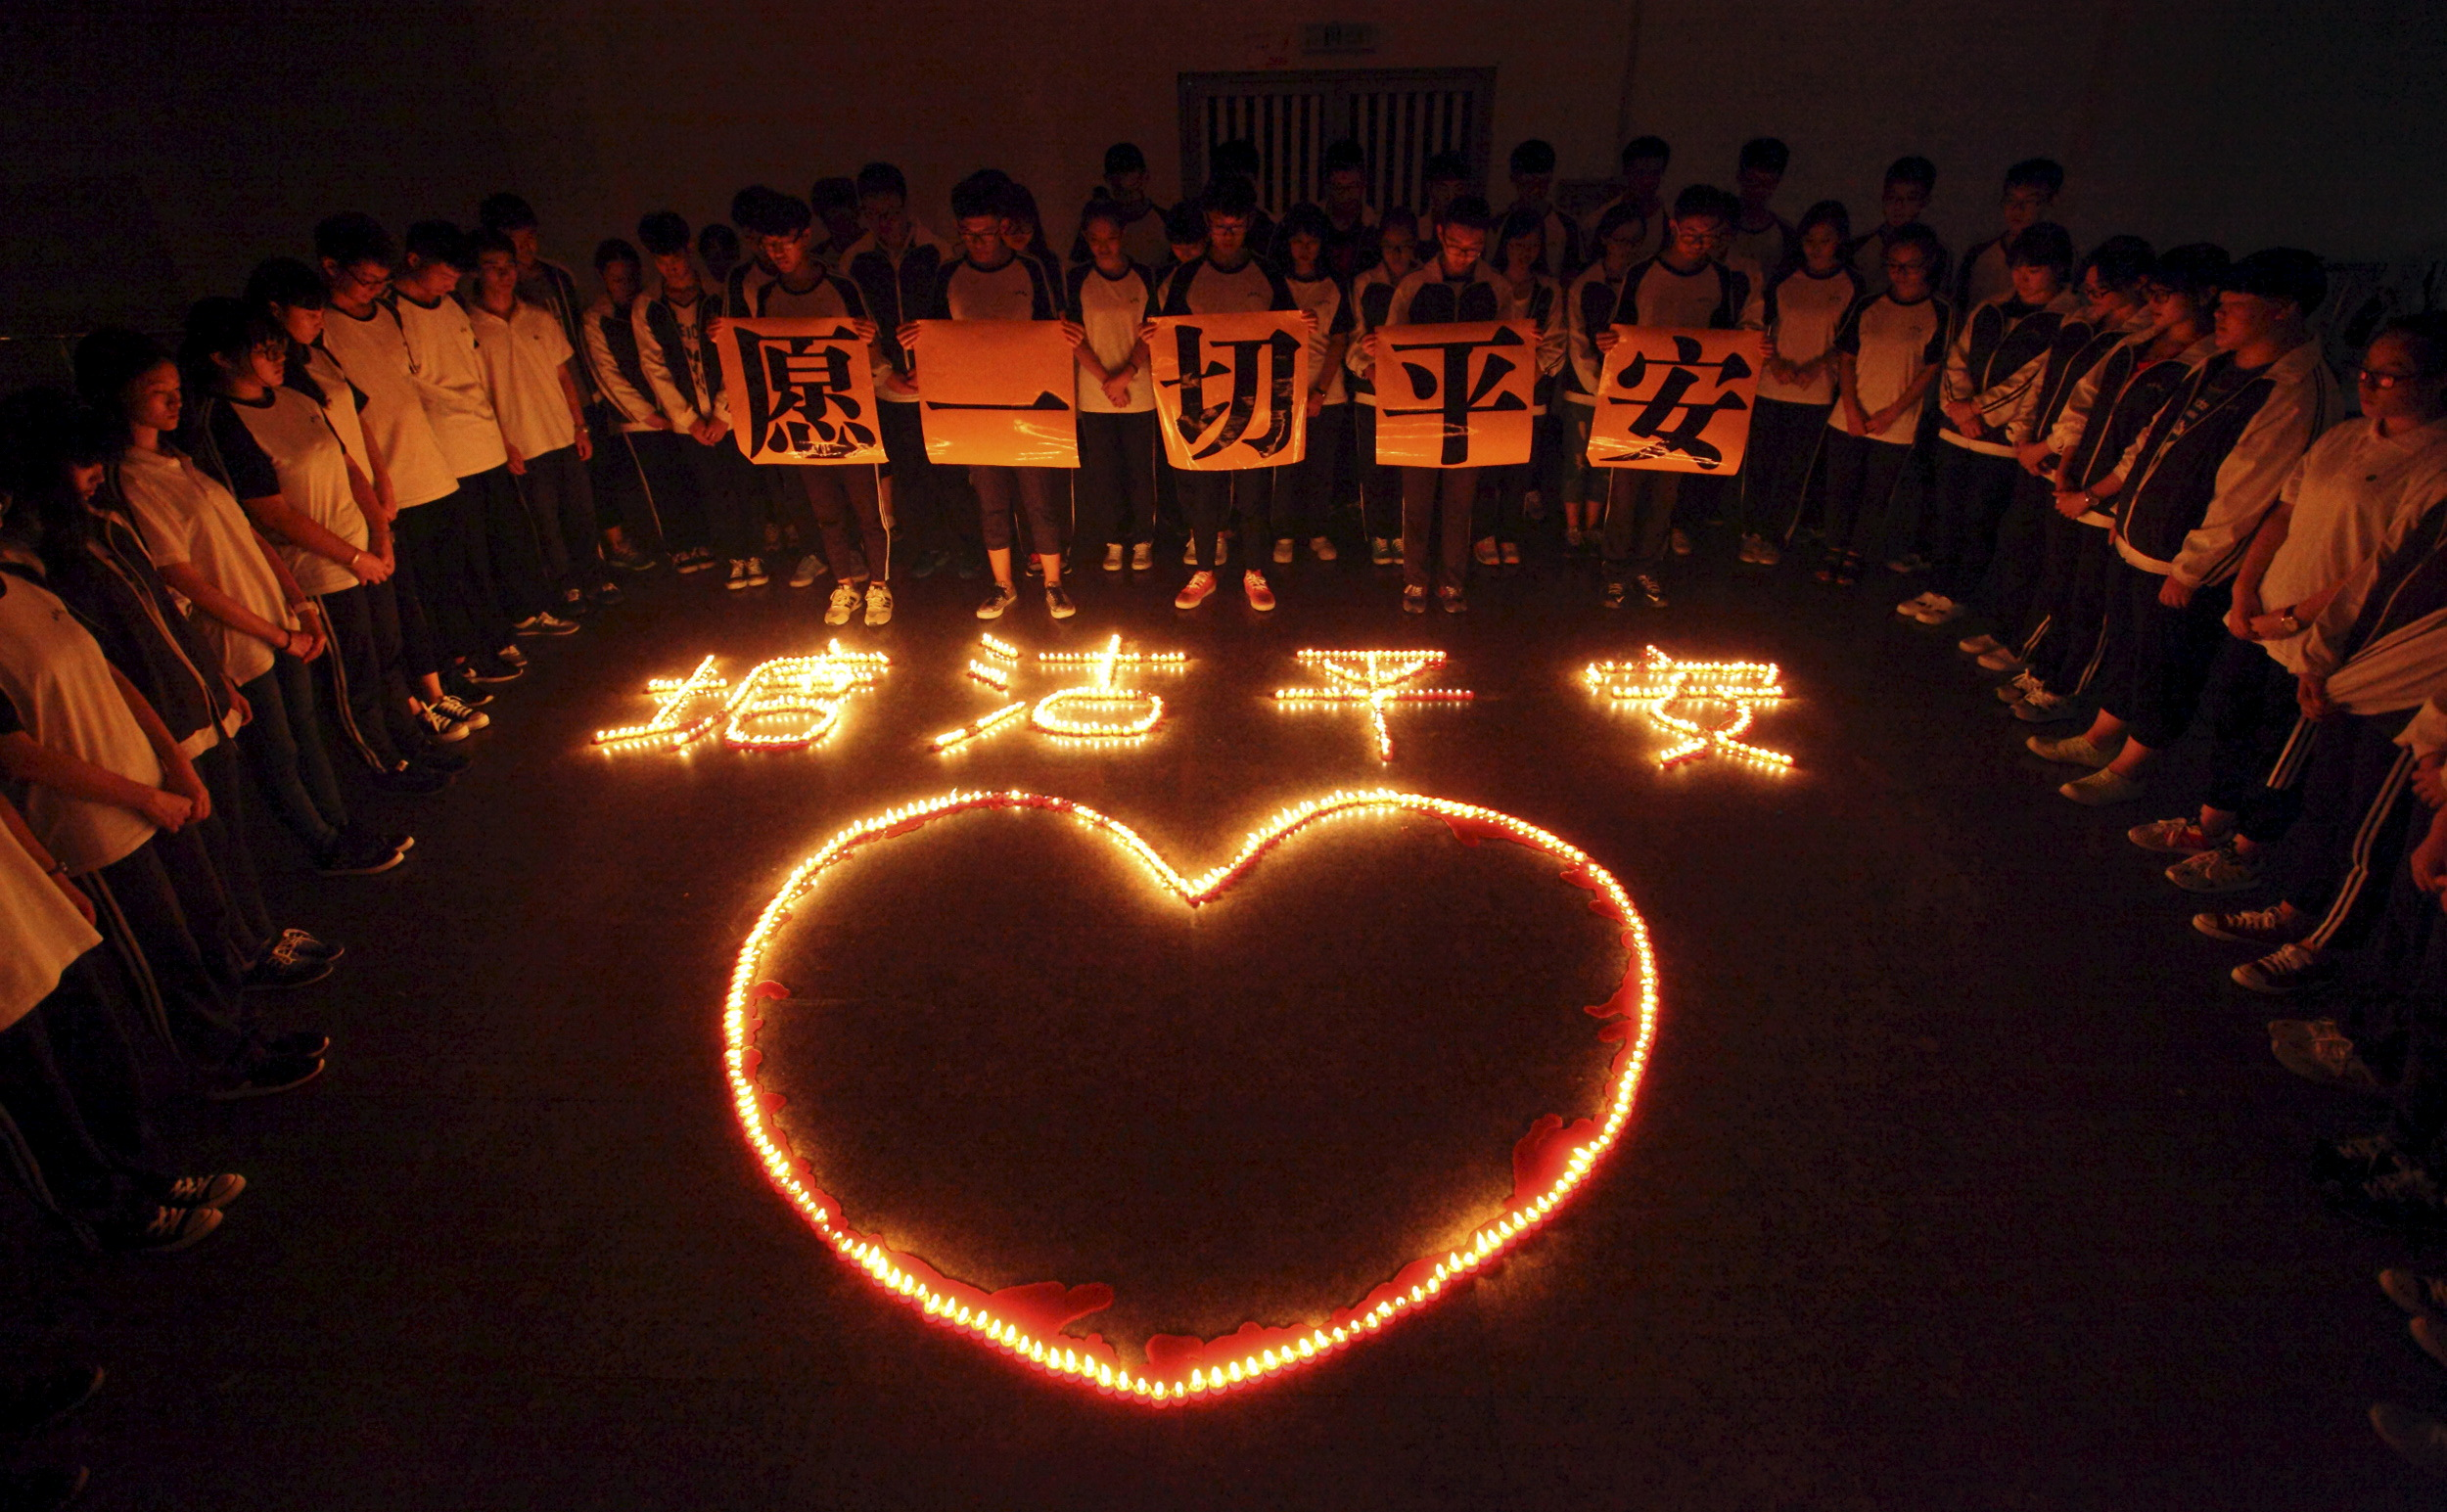 "Students and teachers stand around lighted candles which form into Chinese characters ""Tanggu be safe"" and a heart shape, during a candlelight vigil for victims of the explosions at a school in Zhuji, Zhejiang province, China, August 13, 2015. Tanggu is a name for the affected portion of Tianjin. Photo by Reuters"